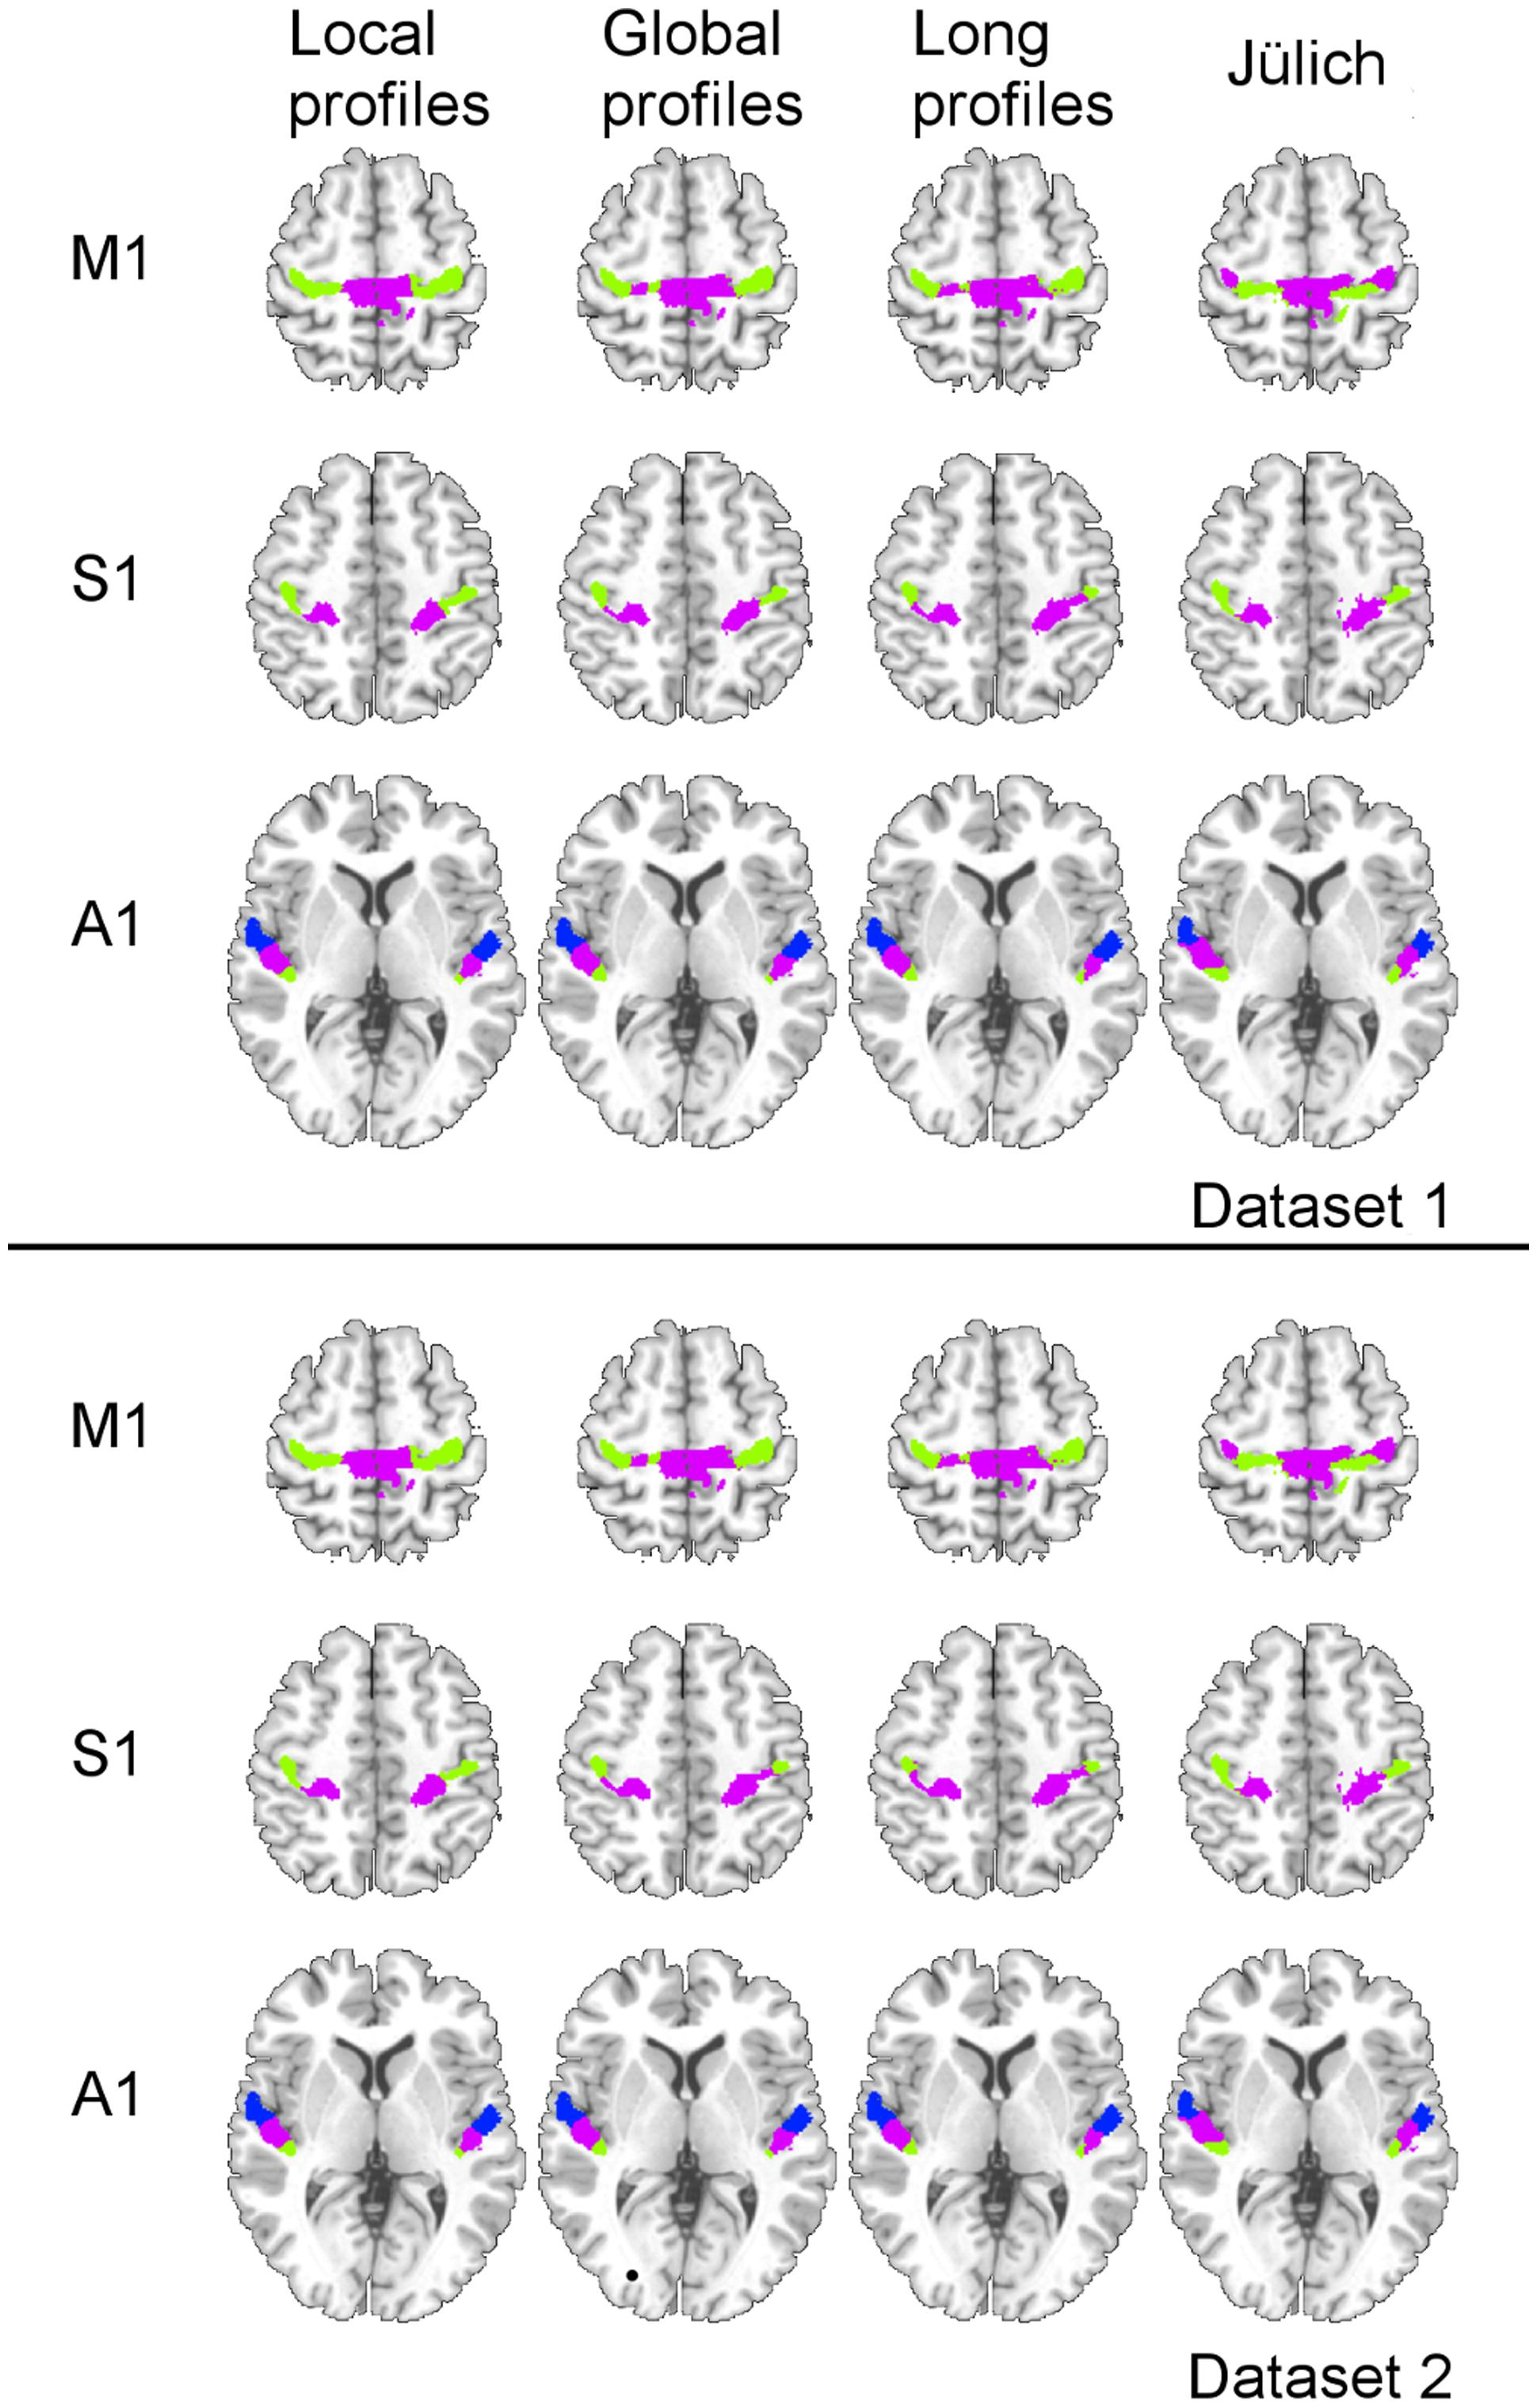 Frontiers Parcellation Of The Primary Cerebral Cortices Based On